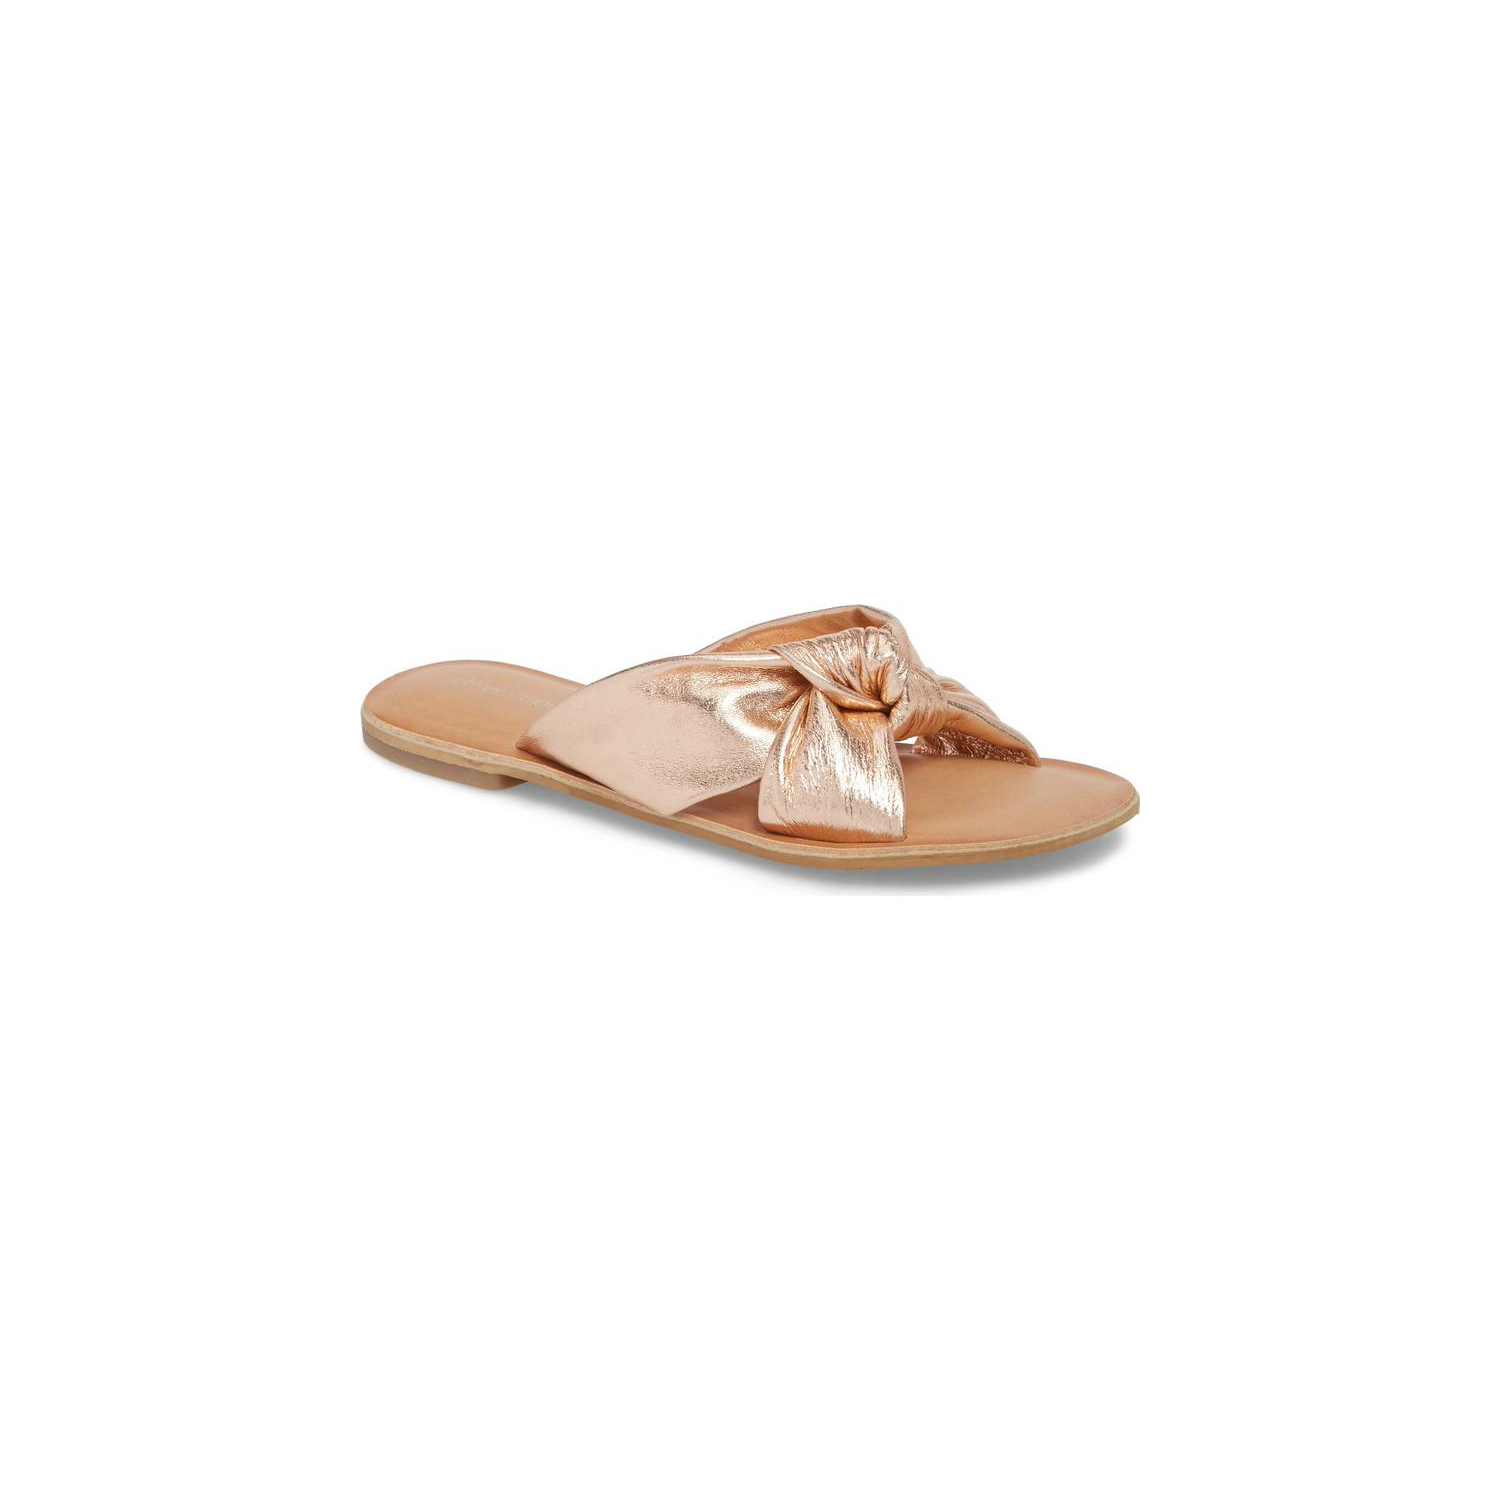 704f555ae7 6 Summer Sandals to Grab During Memorial Day Weekend Sales   Real Simple